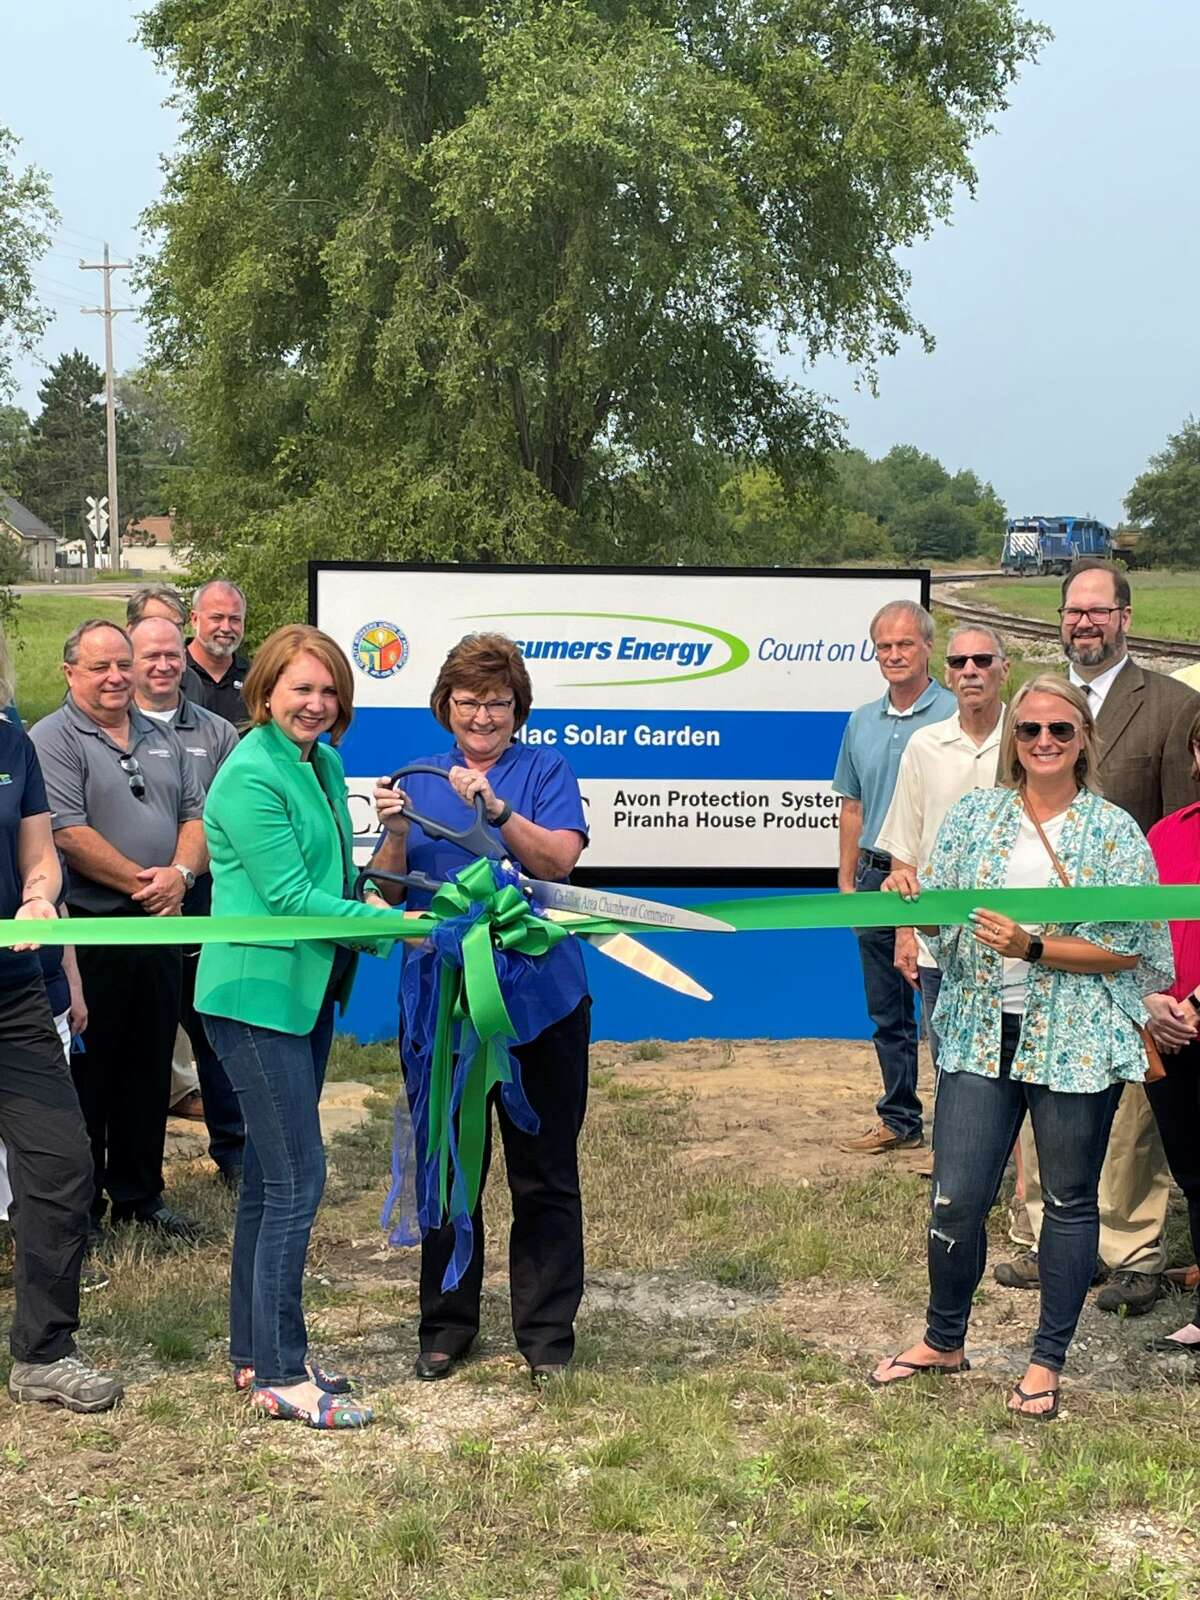 Front, from left, Consumer Energy VP of Costumer Experience Lauren Youngdahl Snyder, joins the mayor of Cadillac, Carla Filkins, to cut the Cadillac Solar Gardens ribbon. Also pictured are other leaders from Consumers Energy, the State of Michigan and the City of Cadillac.